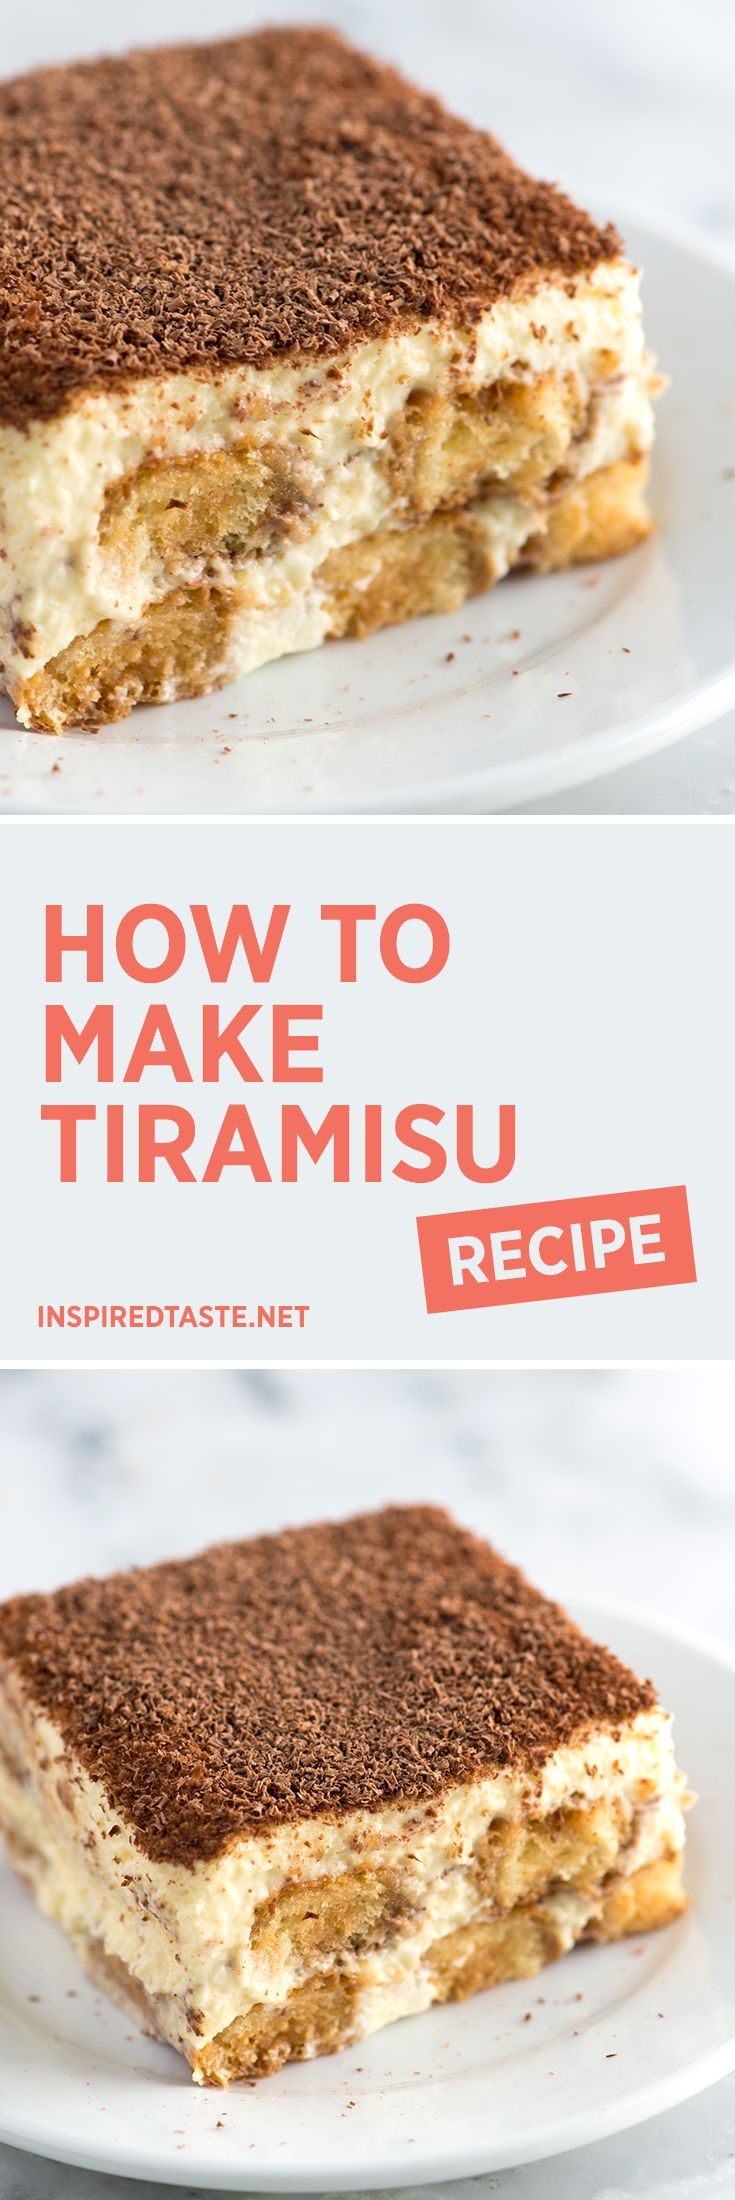 How to Make Tiramisu (Video + Recipe)